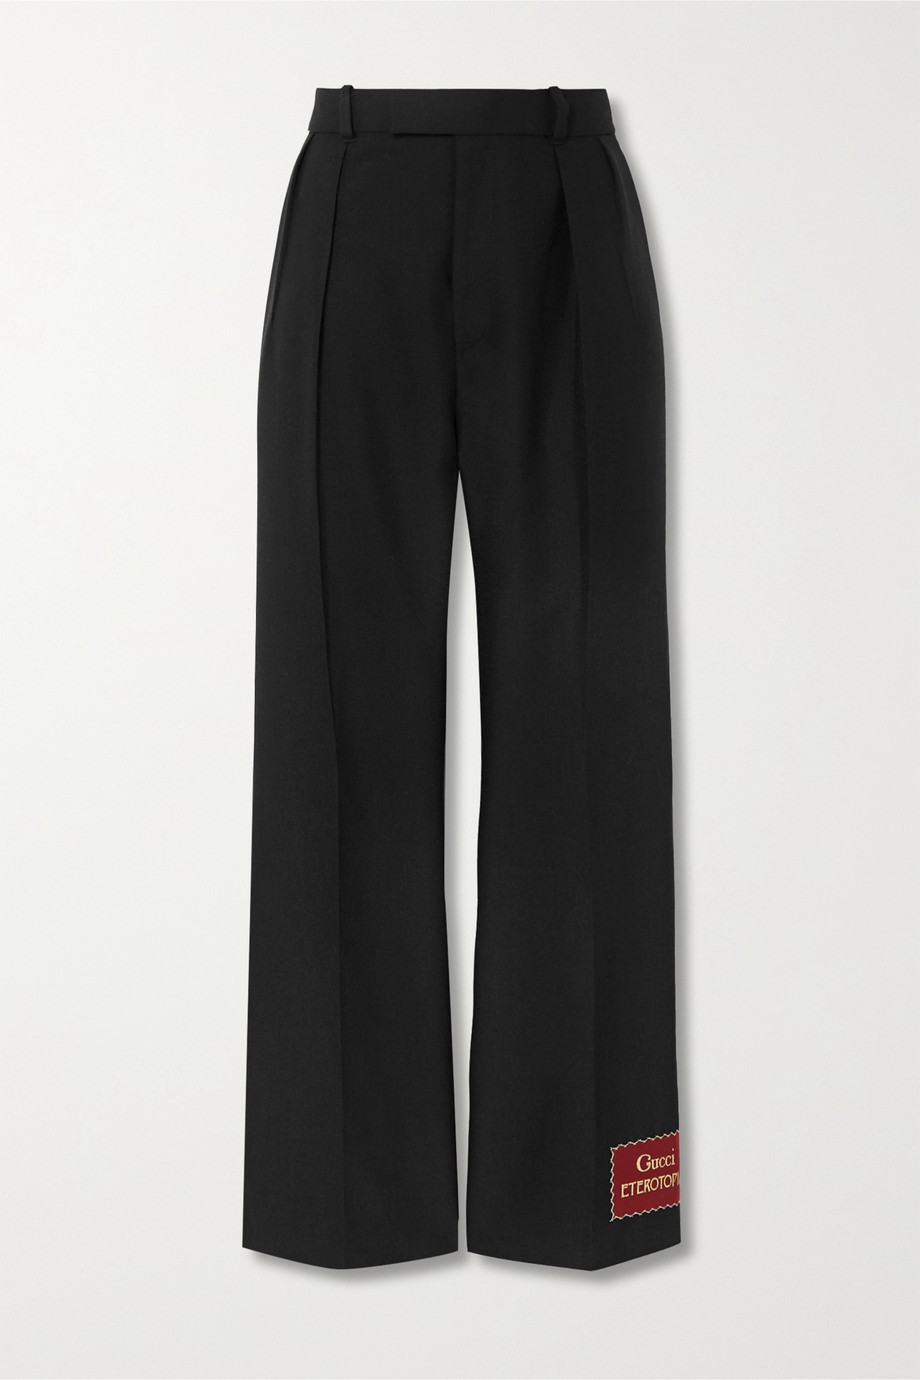 Gucci Appliquéd wool and mohair-blend straight-leg pants